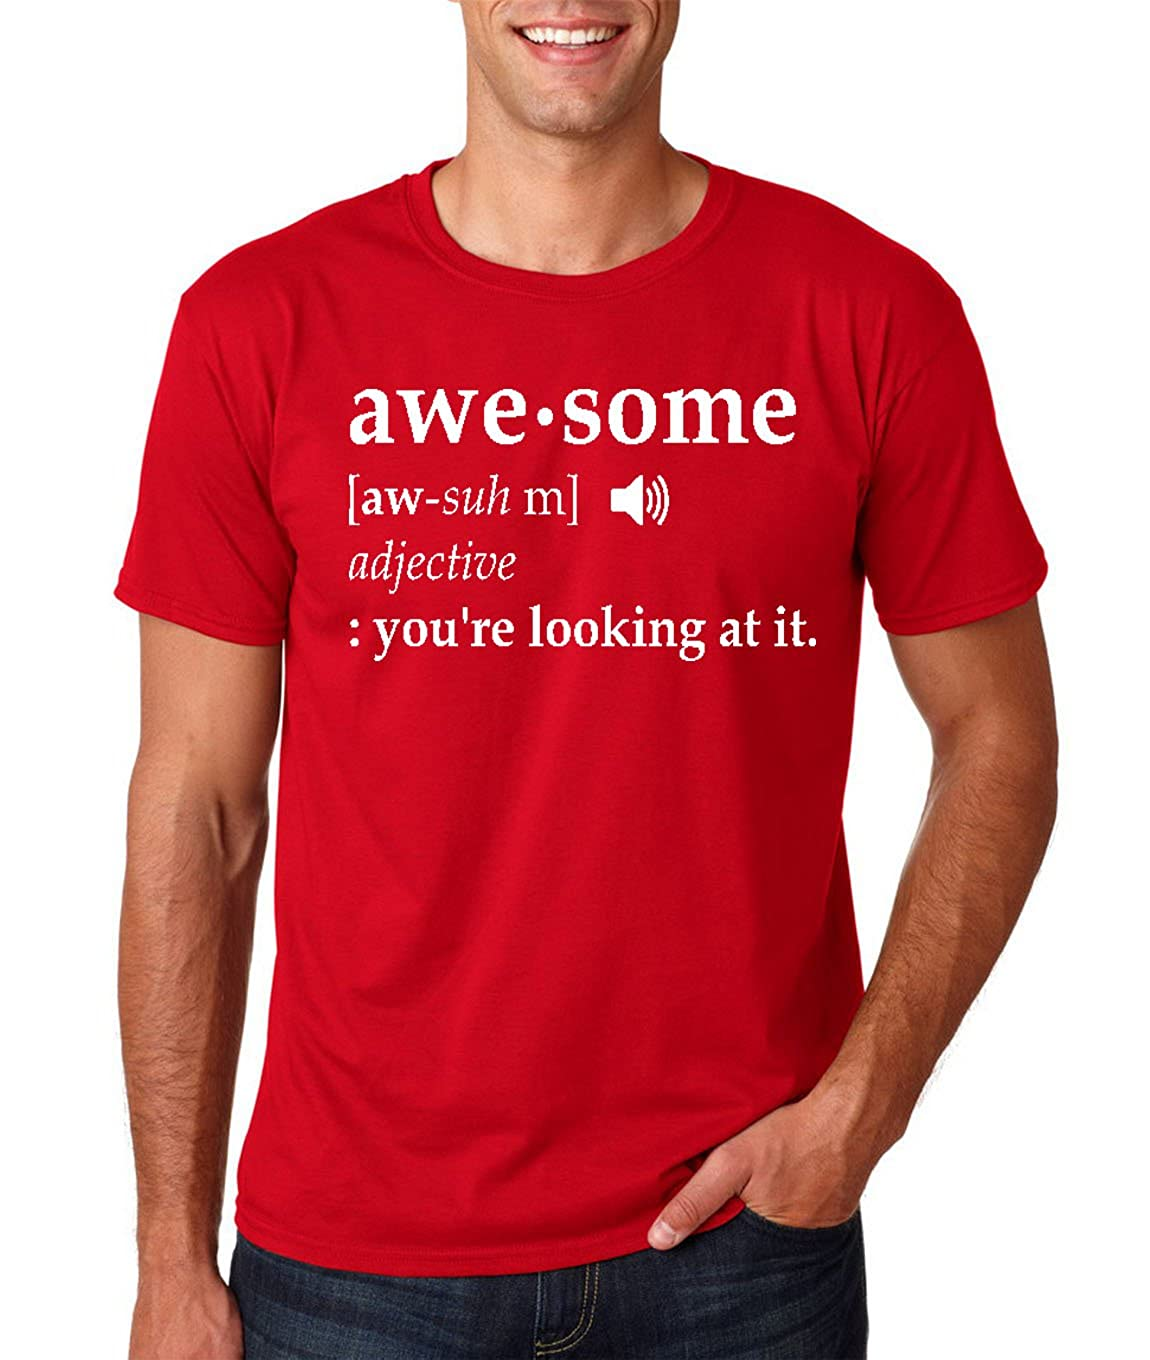 Amazon.com: AW Fashions Awesome - Your Looking at It - Funny Definition Sarcasm Humor Mens T-Shirt: Clothing